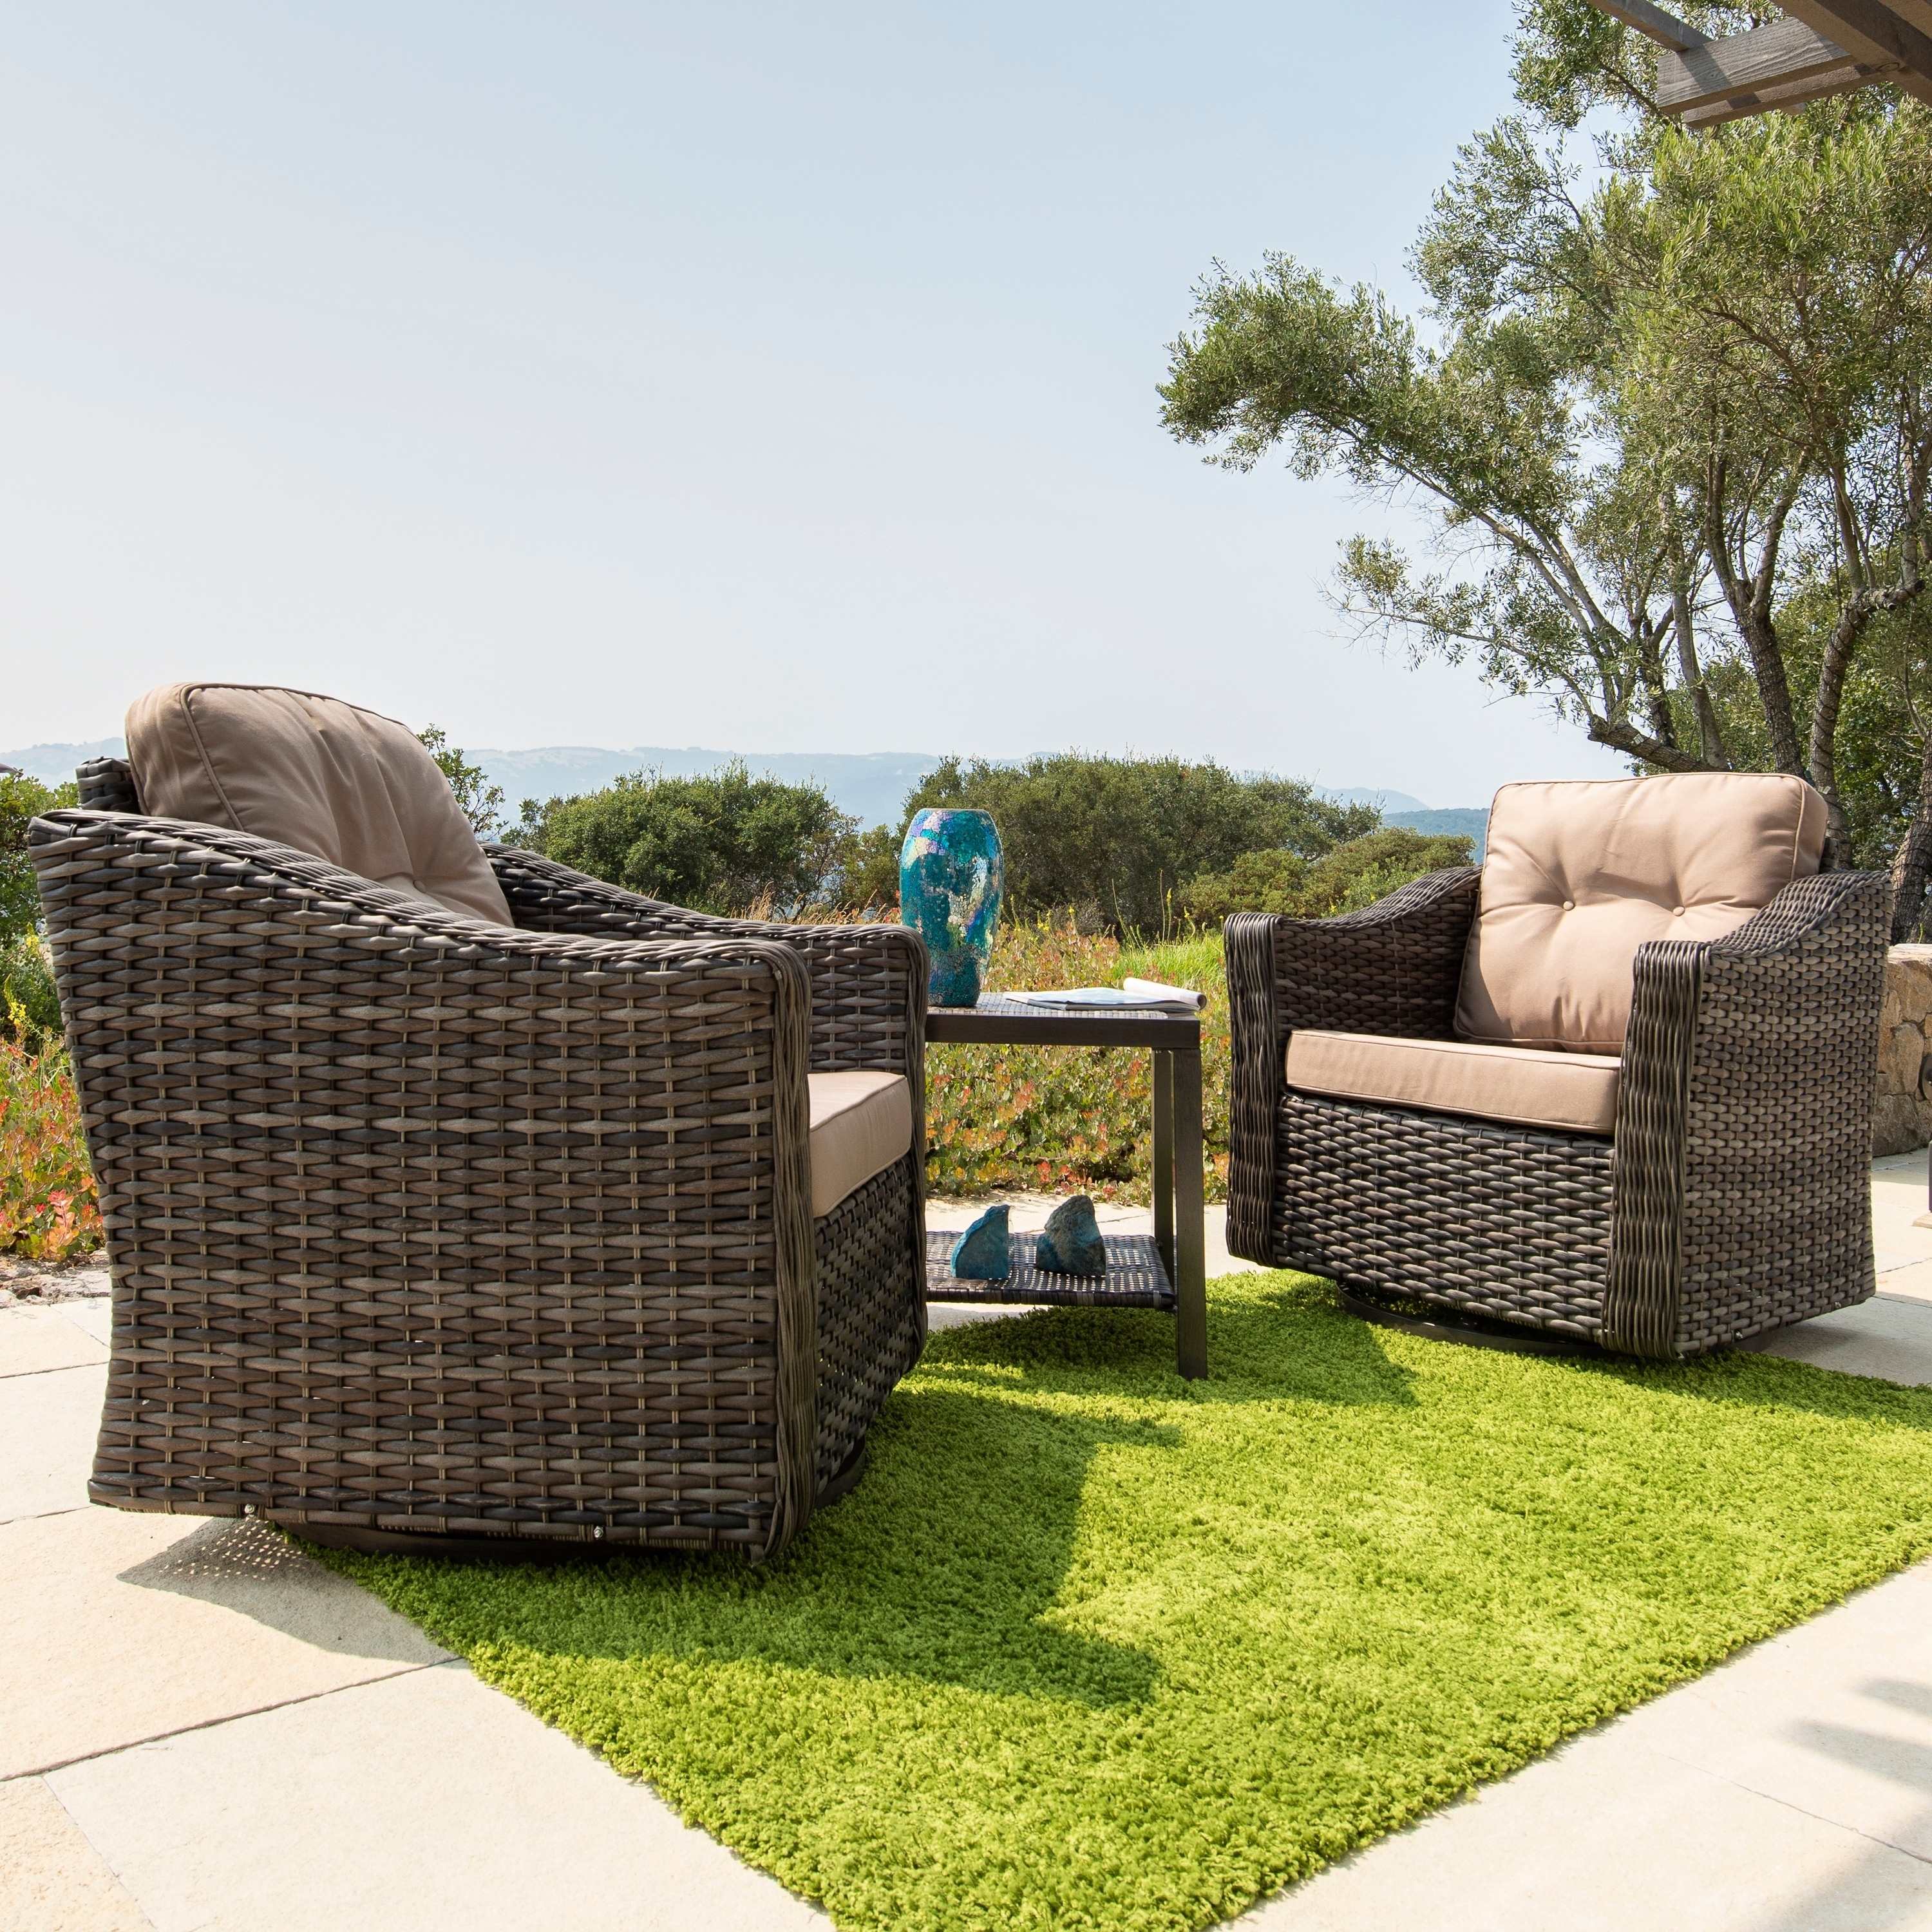 Corvus Eolie 3 Piece Outdoor Wicker Swivel Glider Chair Set With Side Table